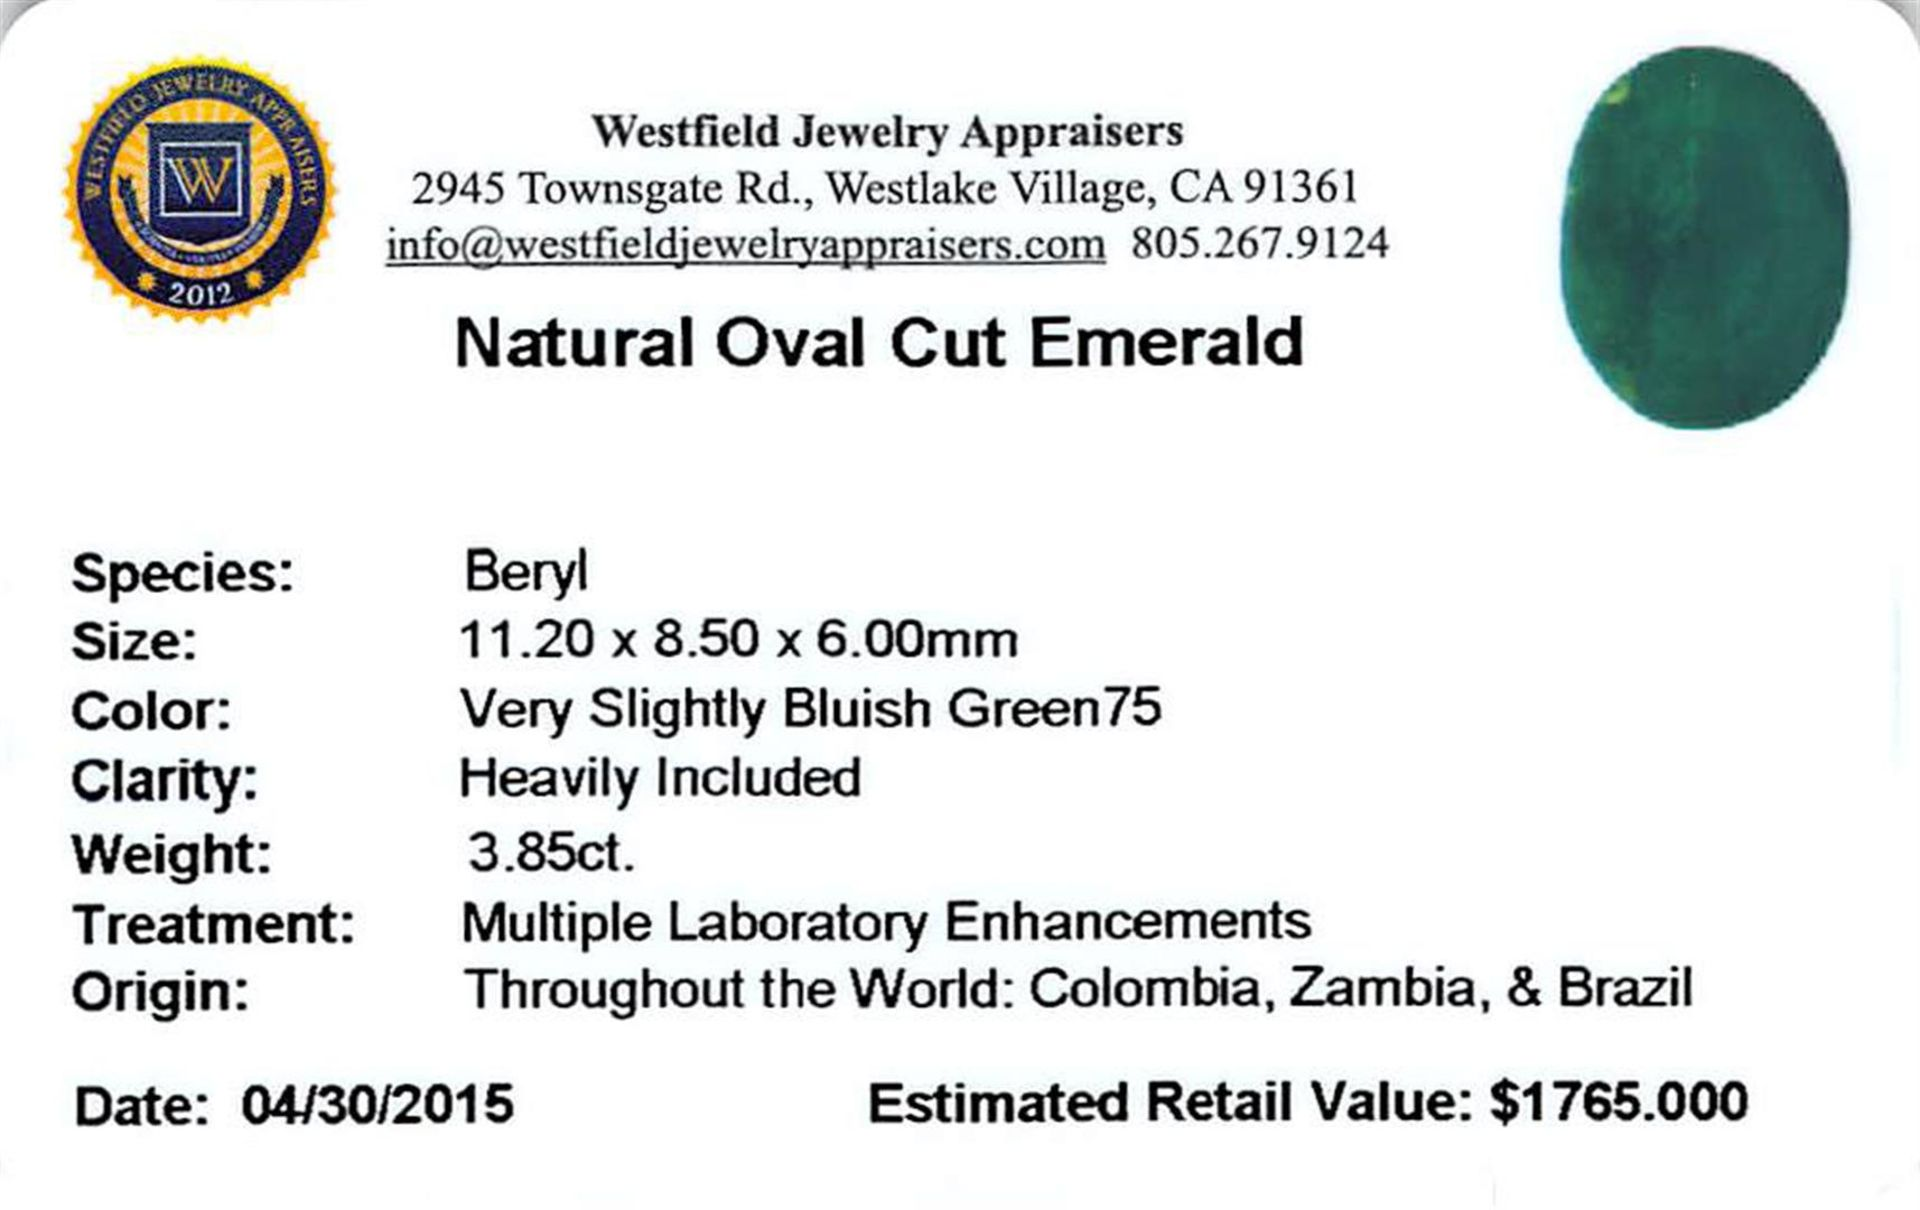 3.85 ctw Oval Emerald Parcel - Image 2 of 2